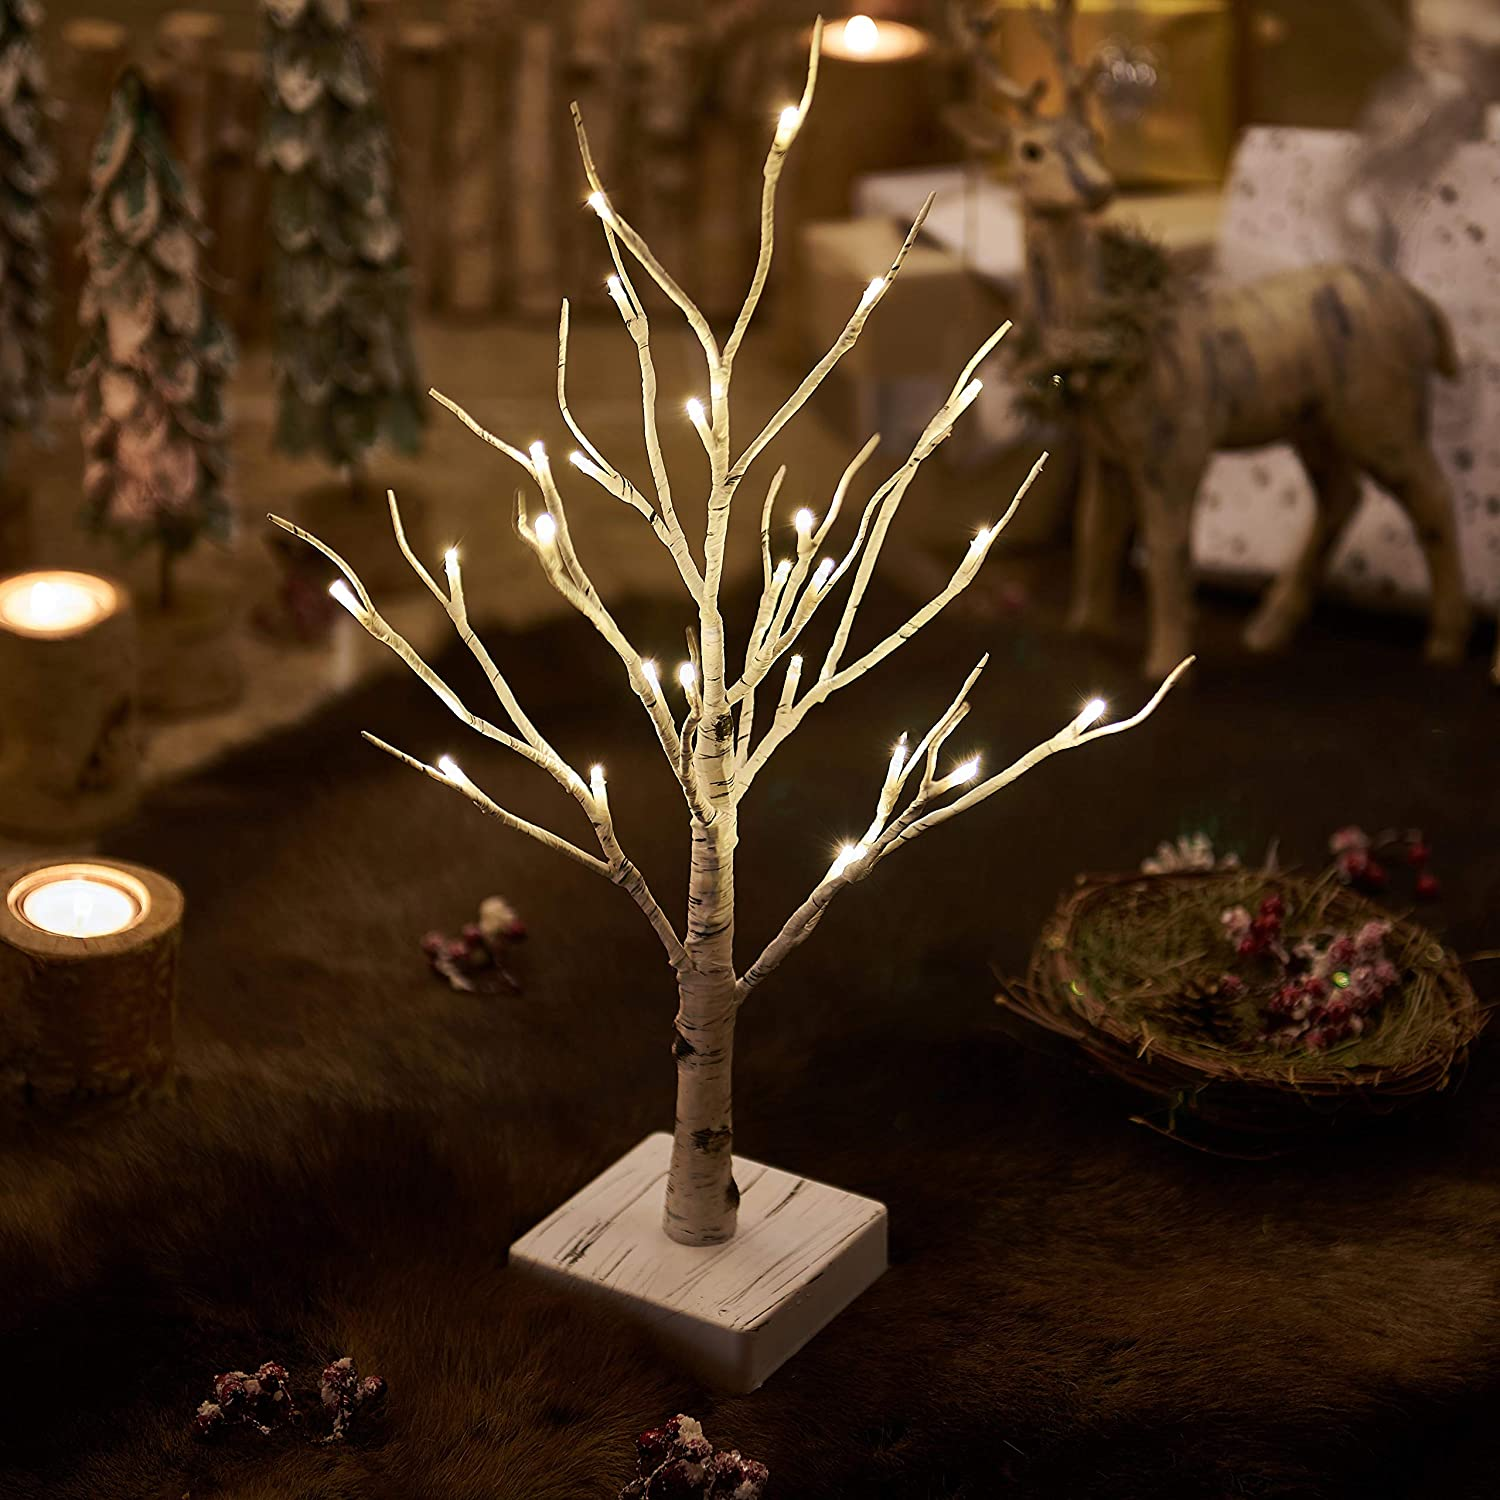 1. Lighted Little Birch Tree with Timer